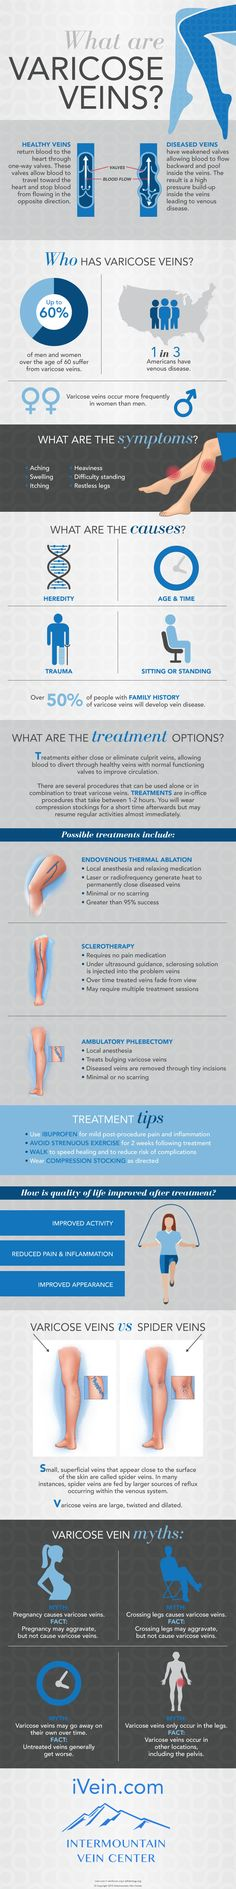 What Are Varicose Veins? – Infographic